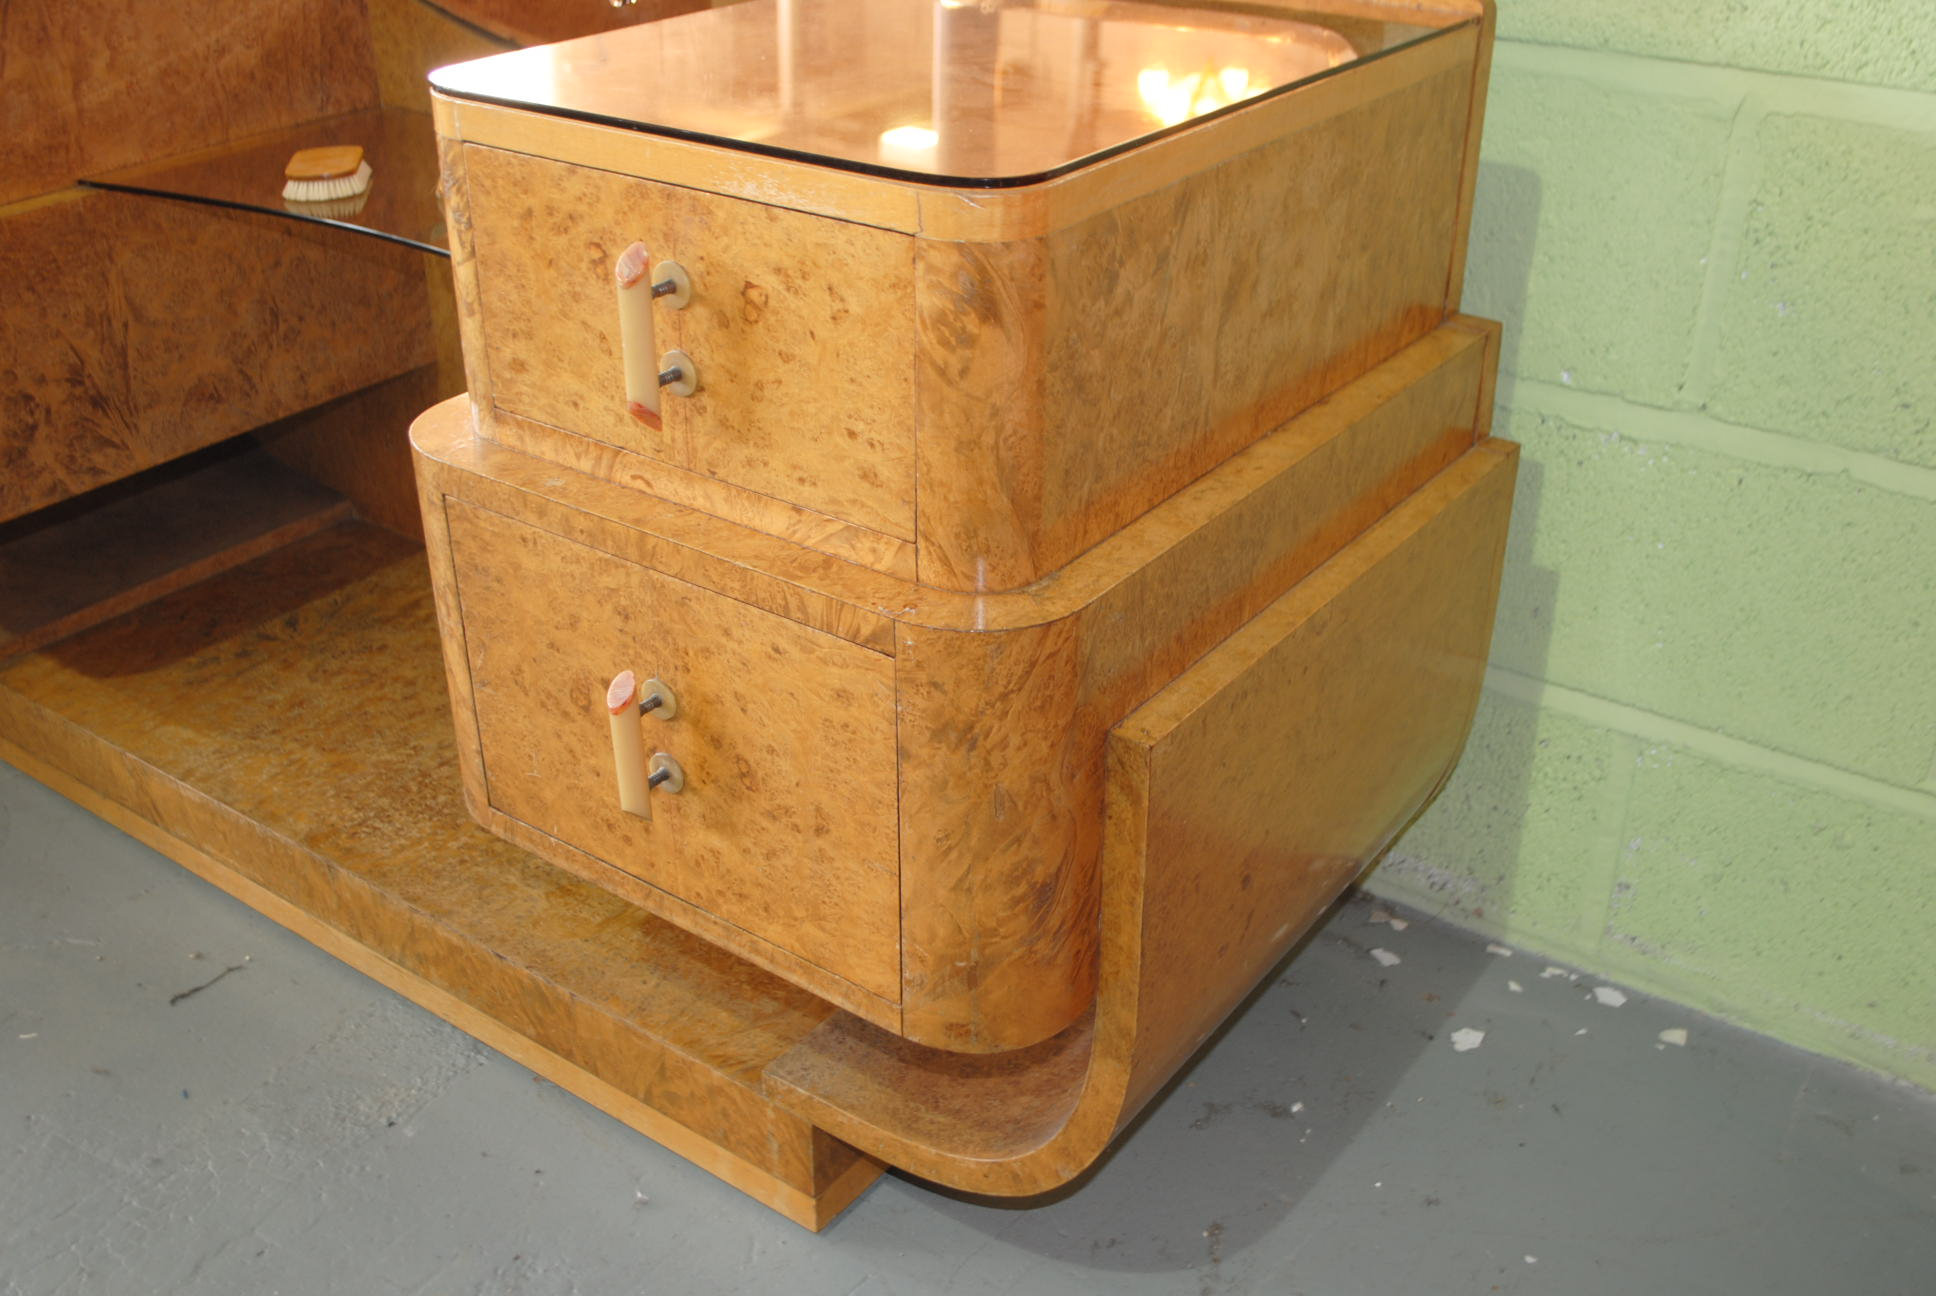 Epstein art deco dressing table and stool cloud 9 art deco furniture sales - Epstein art deco furniture ...